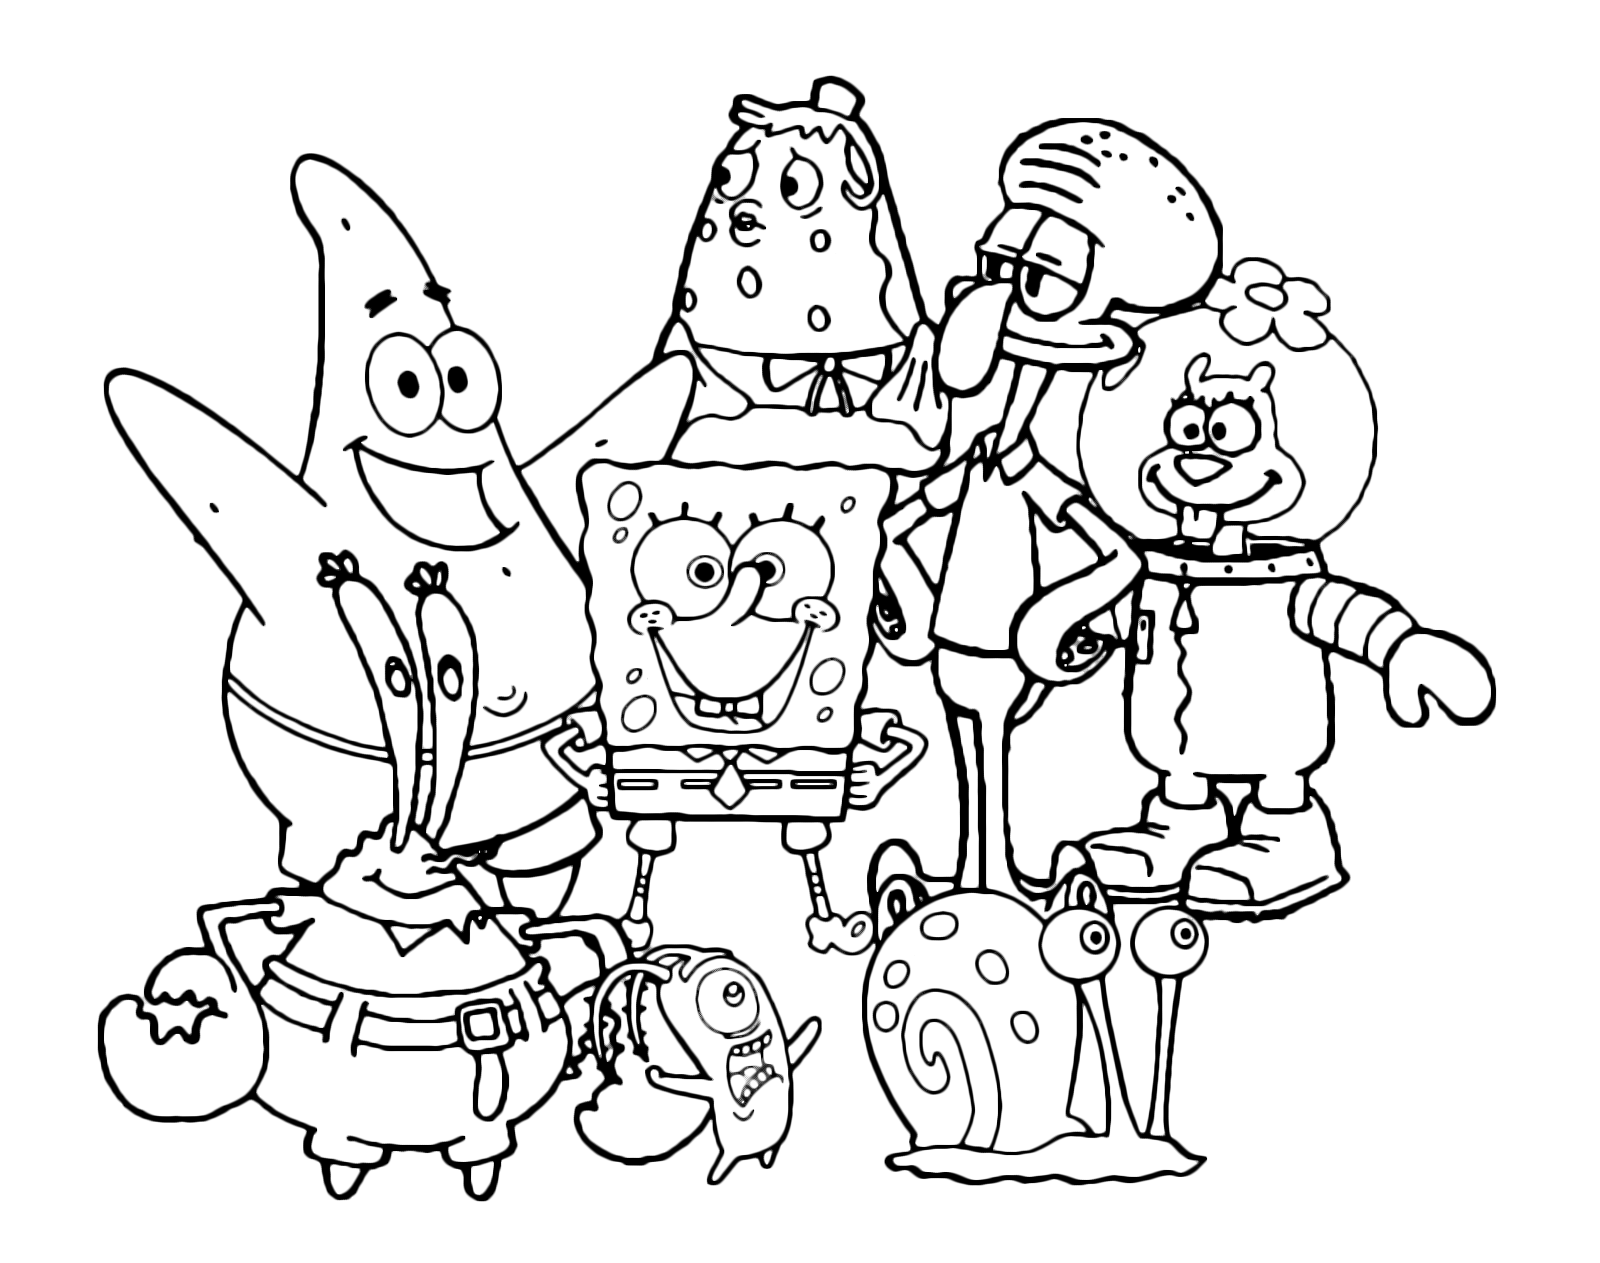 SpongeBob - SpongeBob Patrick Gary Sandy Squidward Mrs Puff Mr Krabs ...